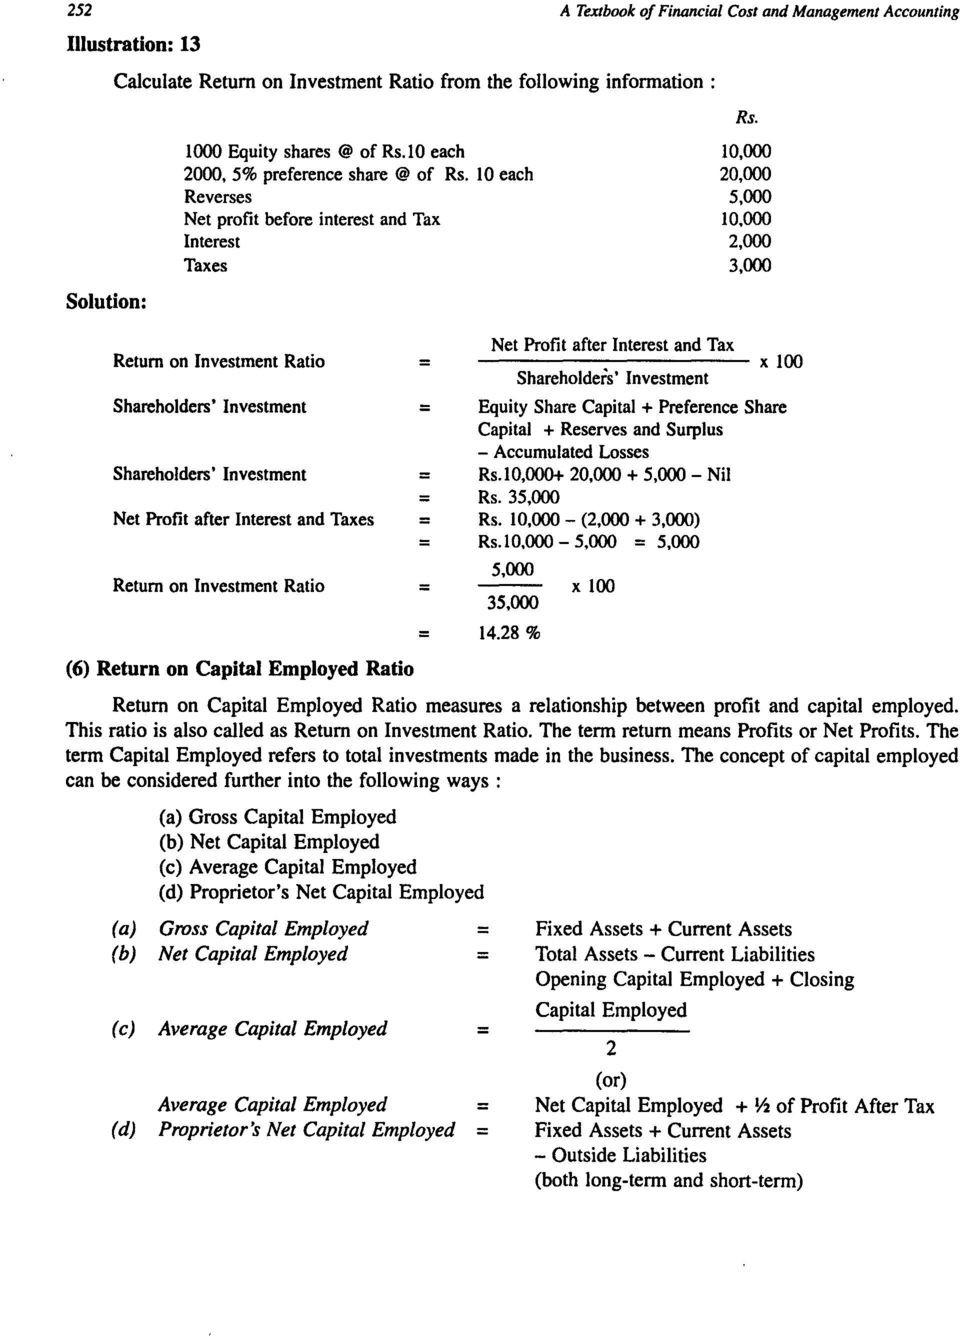 Textbook of Financial Cost and Management Accounting 10,000 0,000 5,000 lo,ooo,000 3,000 Net Profit after Interest and Tax ------------ Shareholders' Investment Equity Share Capital + Preference